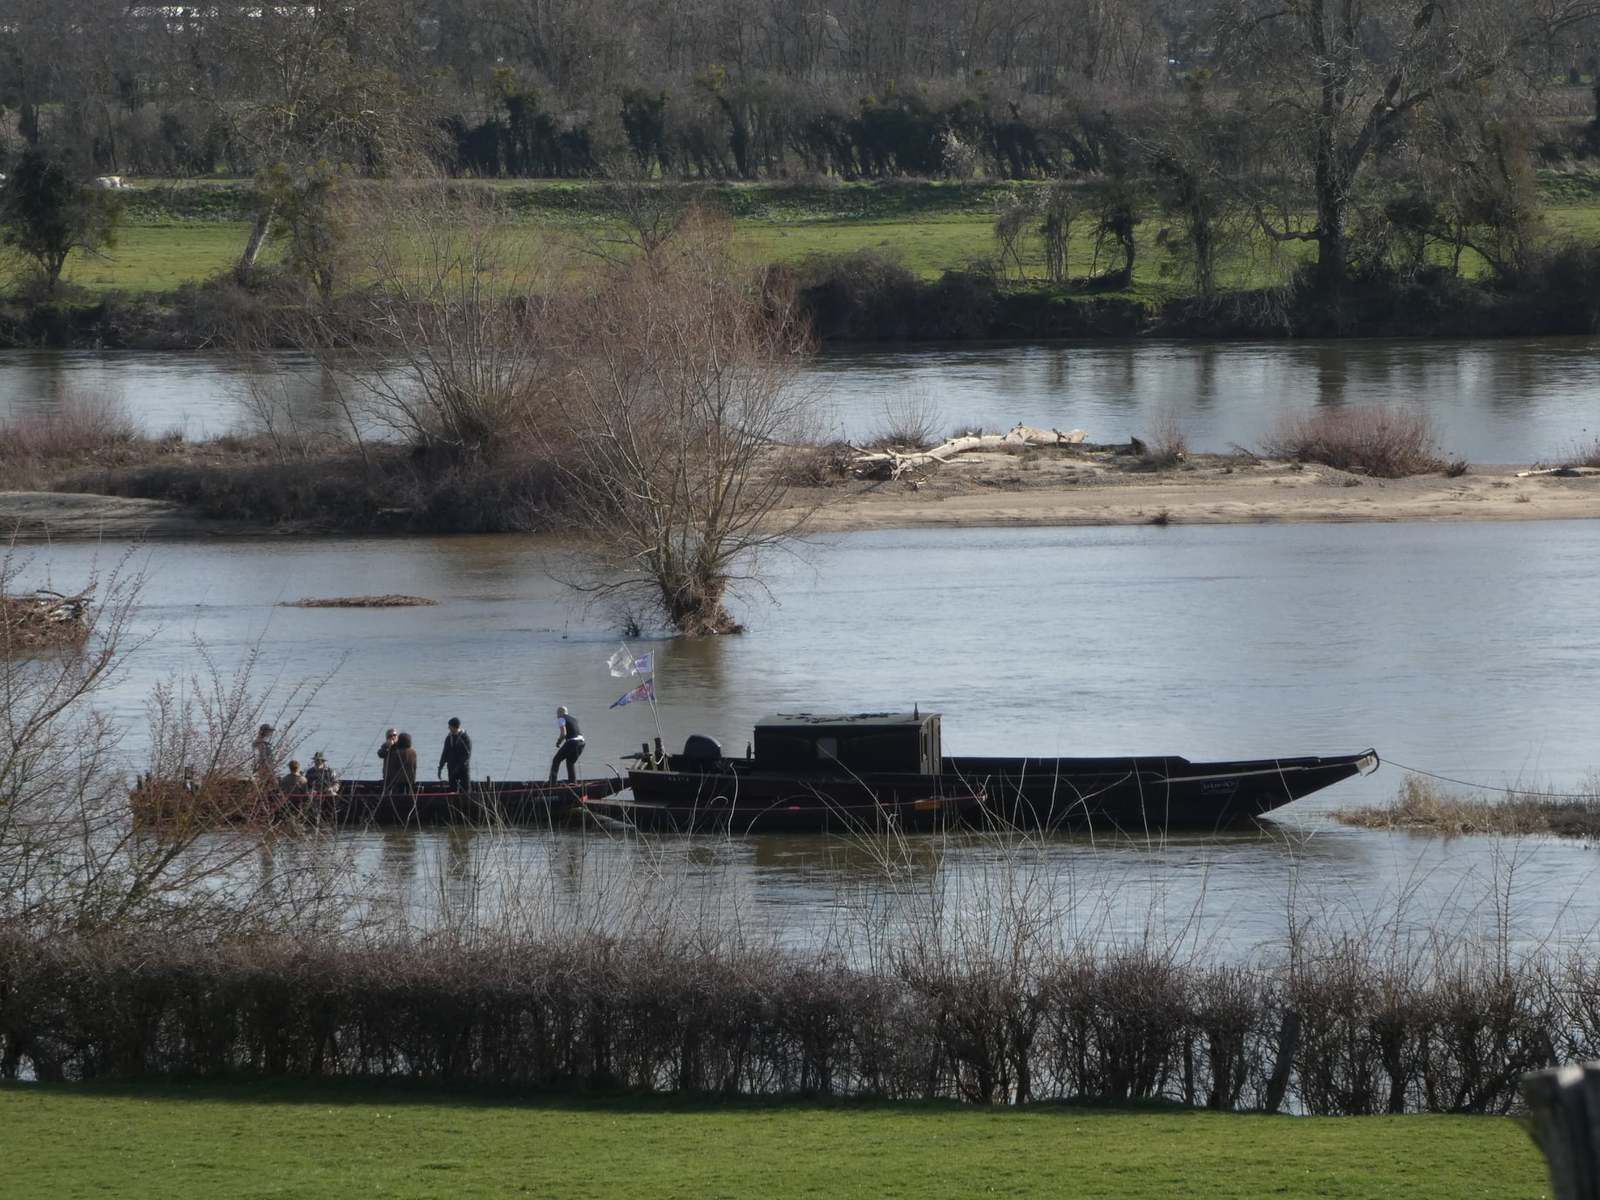 Le train de bateaux chavan vu d'Embraud (photo sabine mouche)